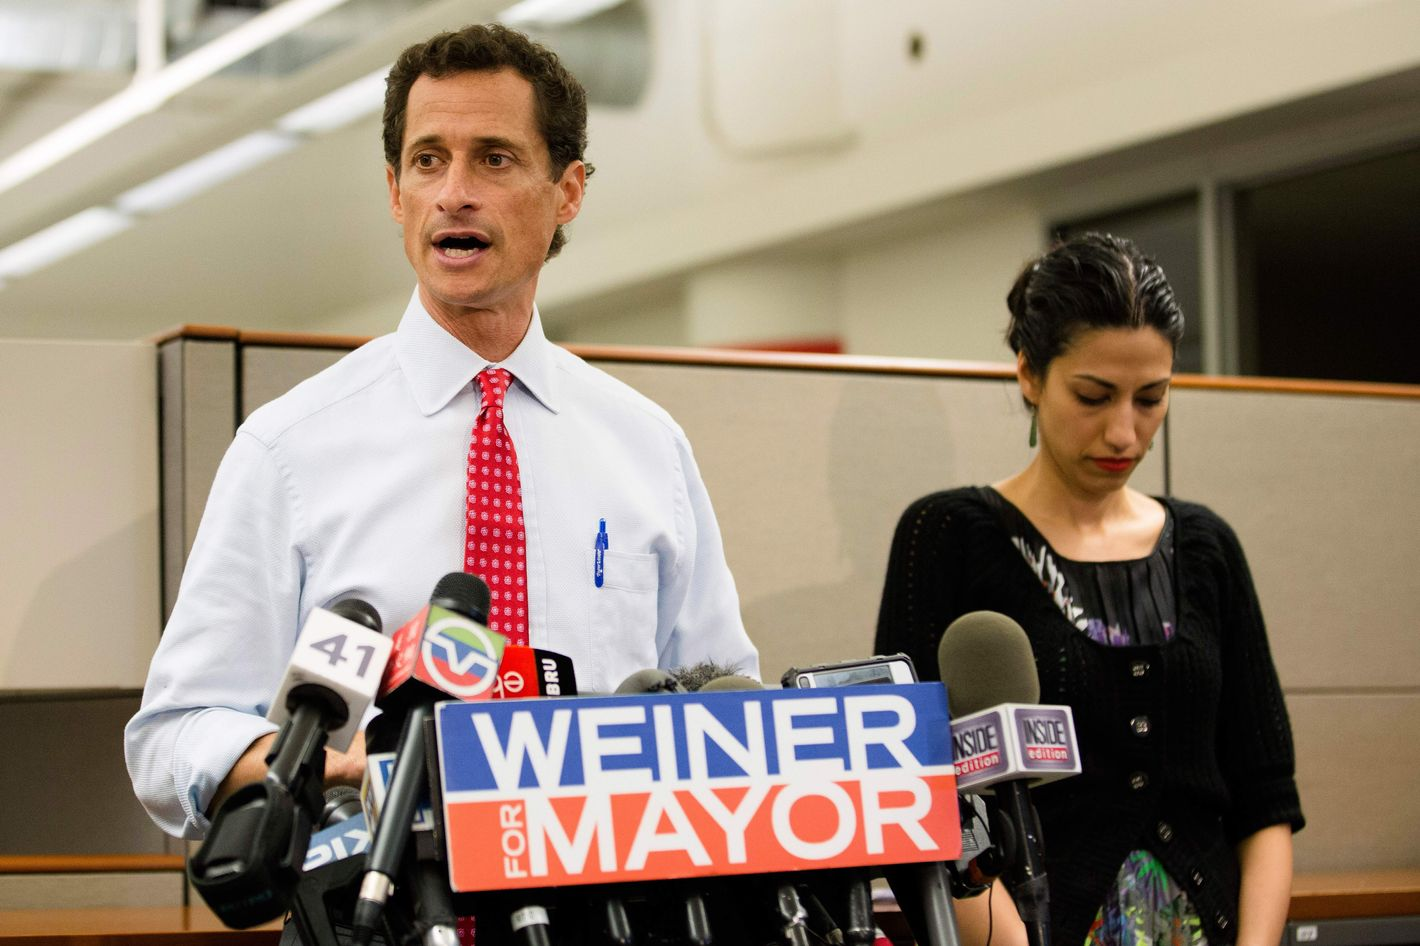 New York mayoral candidate Anthony Weiner speaks during a news conference alongside his wife Huma Abedin at the Gay Men's Health Crisis headquarters, Tuesday, July 23, 2013, in New York.  The former congressman says he's not dropping out of the New York City mayoral race in light of newly revealed explicit online correspondence with a young woman.